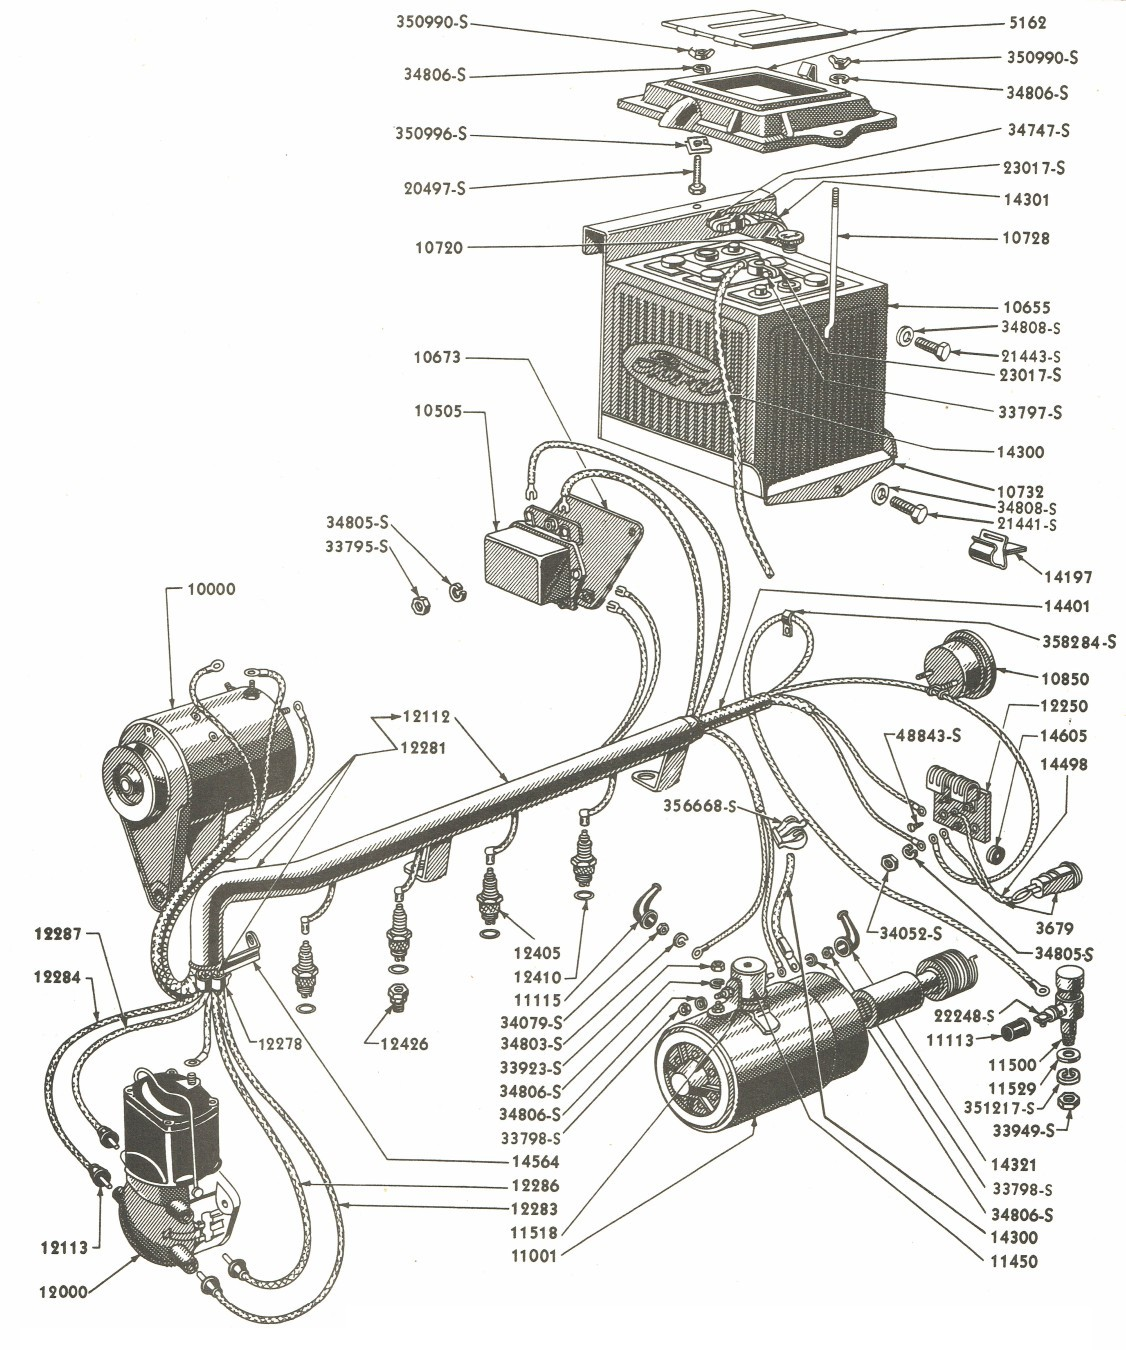 [EQHS_1162]  Ford Naa 12 Volt Diagram | Wiring Diagram | Wiring Diagram For Ford 4000 Tractor |  | Wiring Diagram - AutoScout24